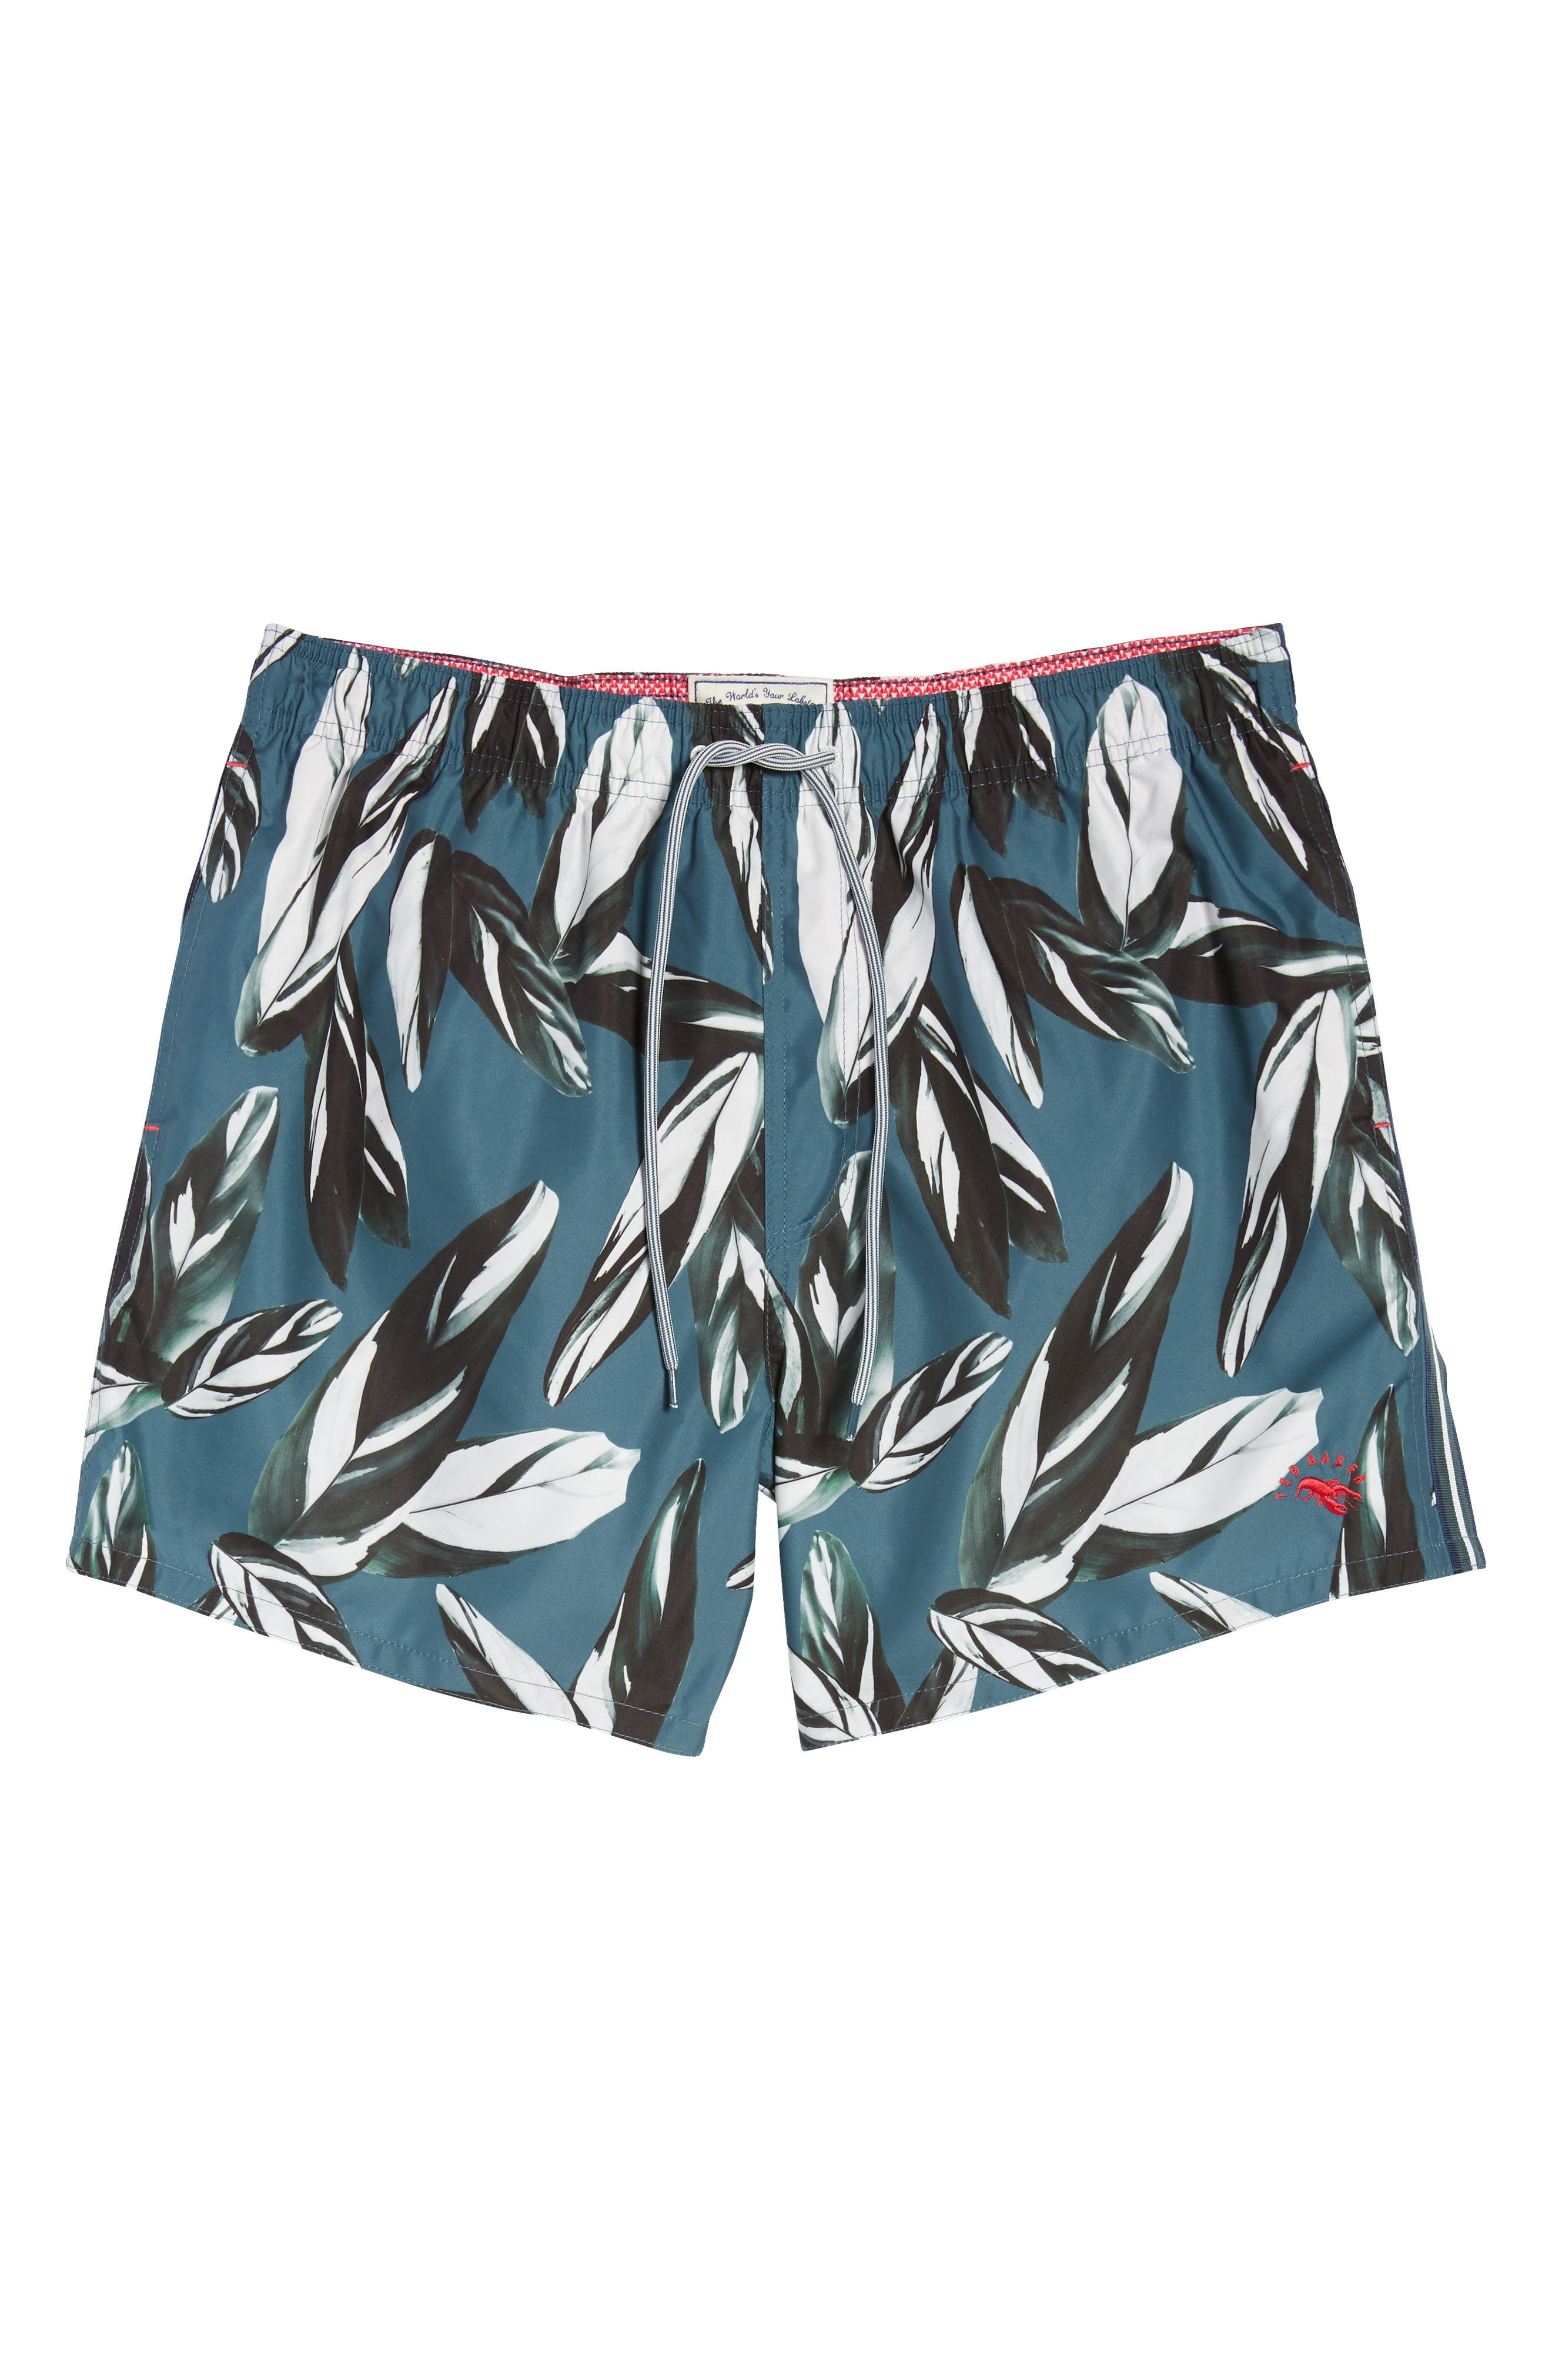 Bury Leaf Print Swim Shorts,                             Alternate thumbnail 6, color,                             440